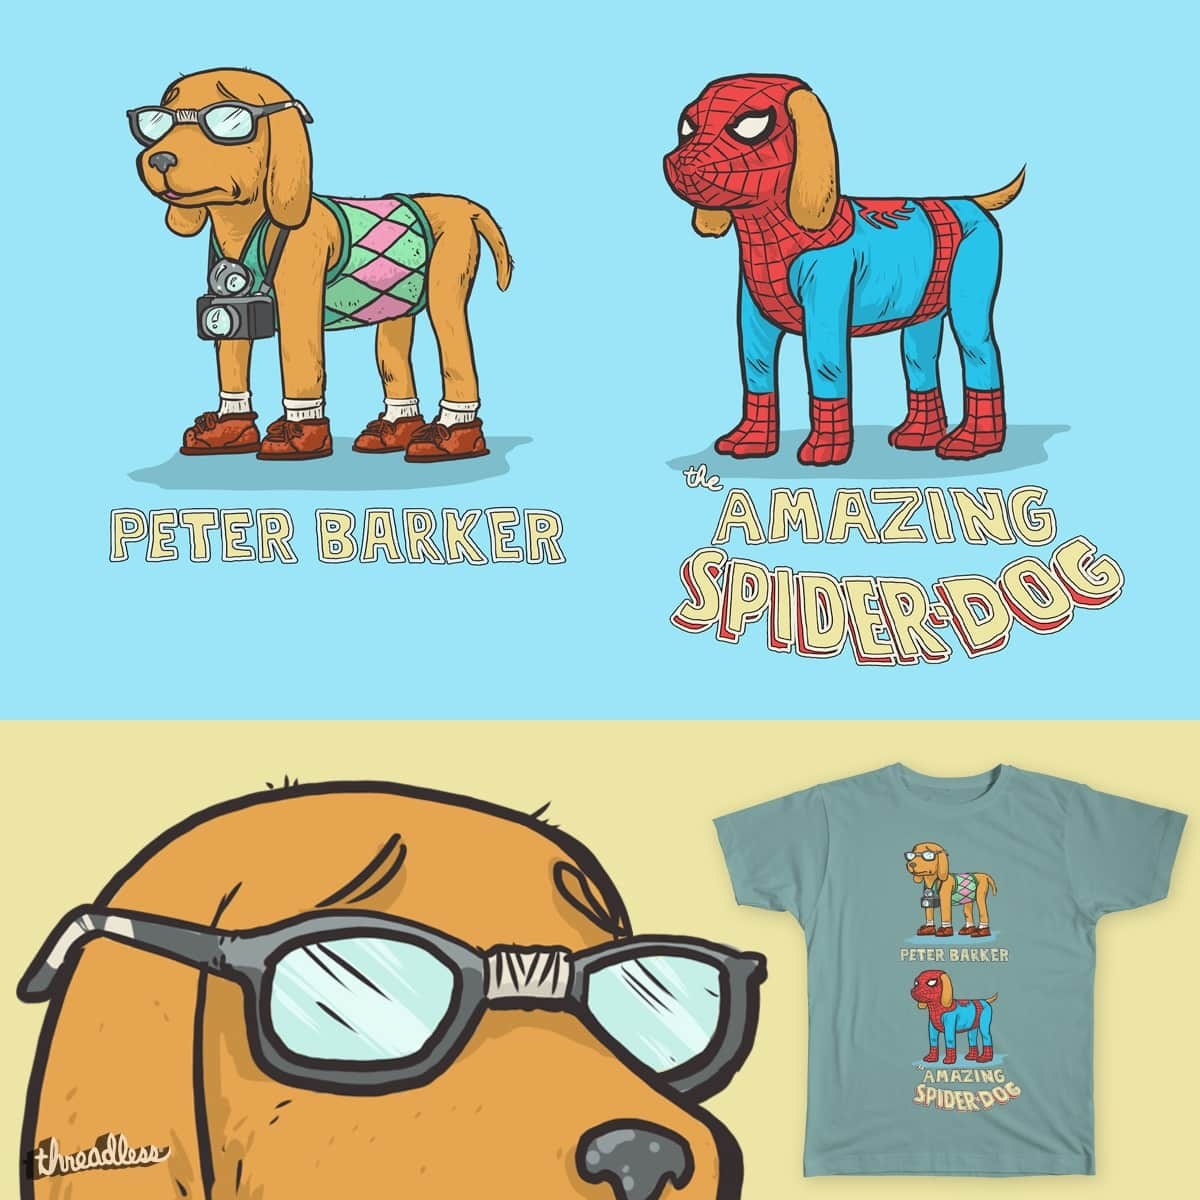 Peter Barker by Josh_Sketchy on Threadless